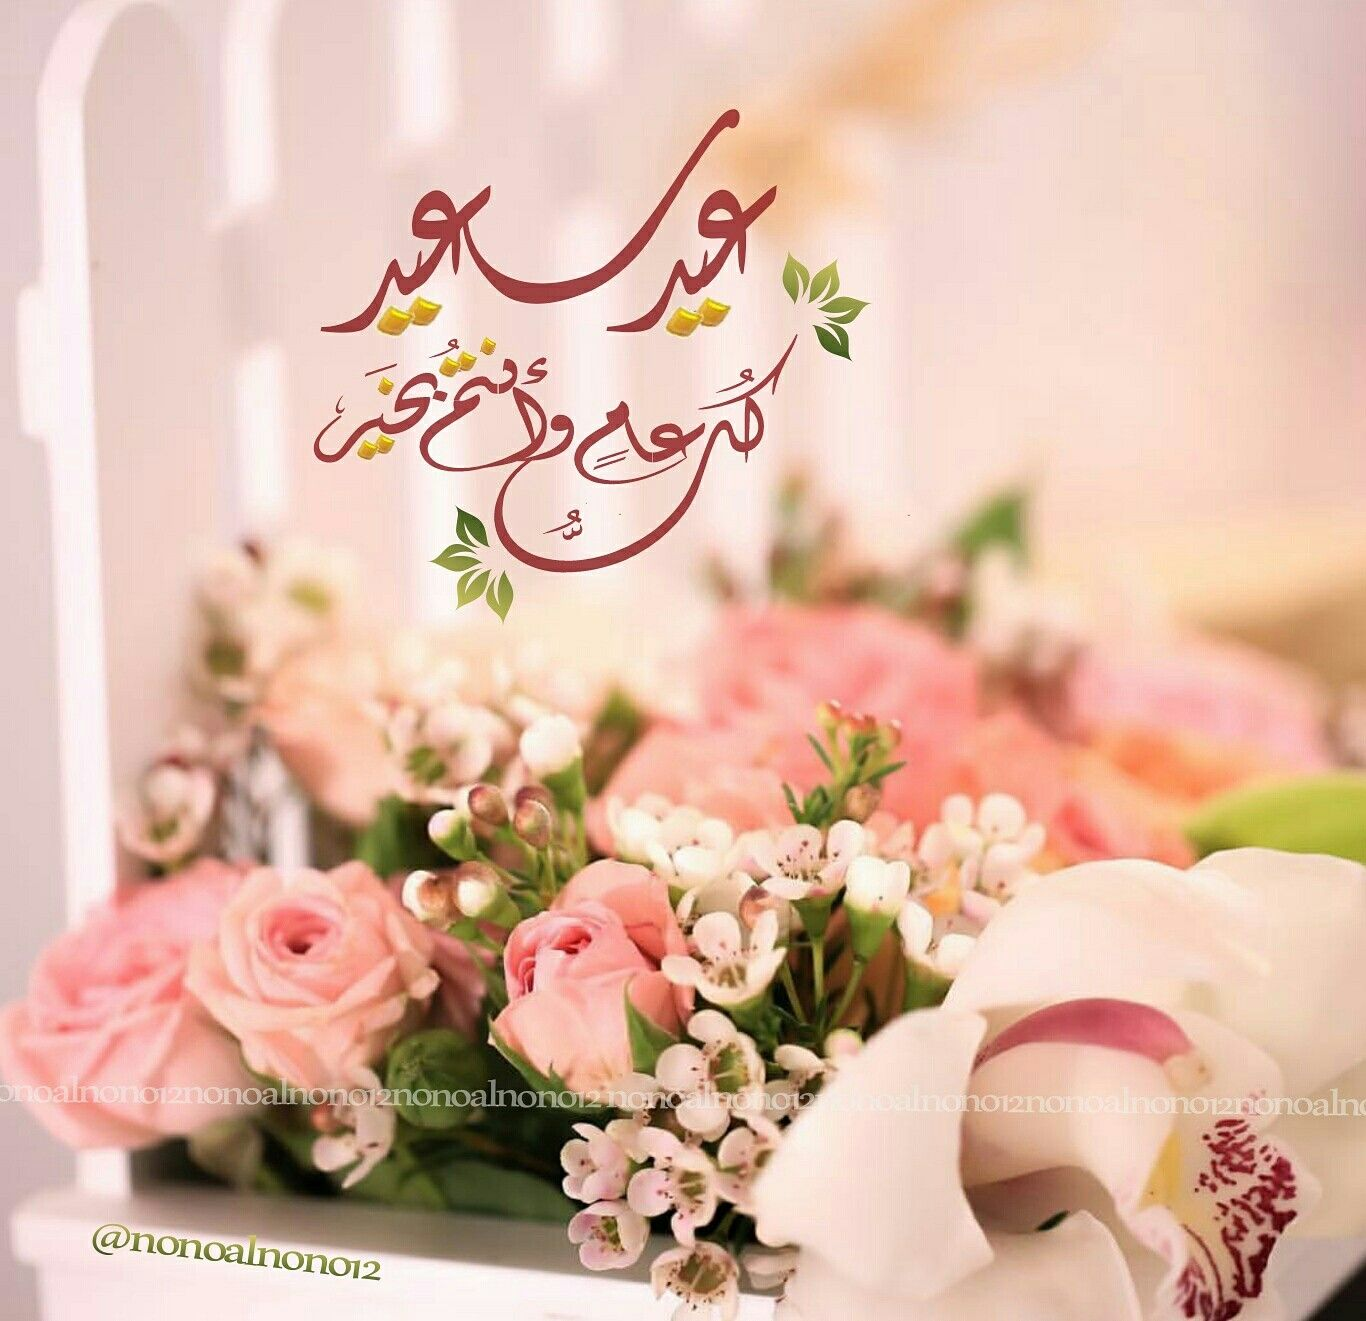 عيد سعيد Eid Greetings Eid Cards Happy Eid